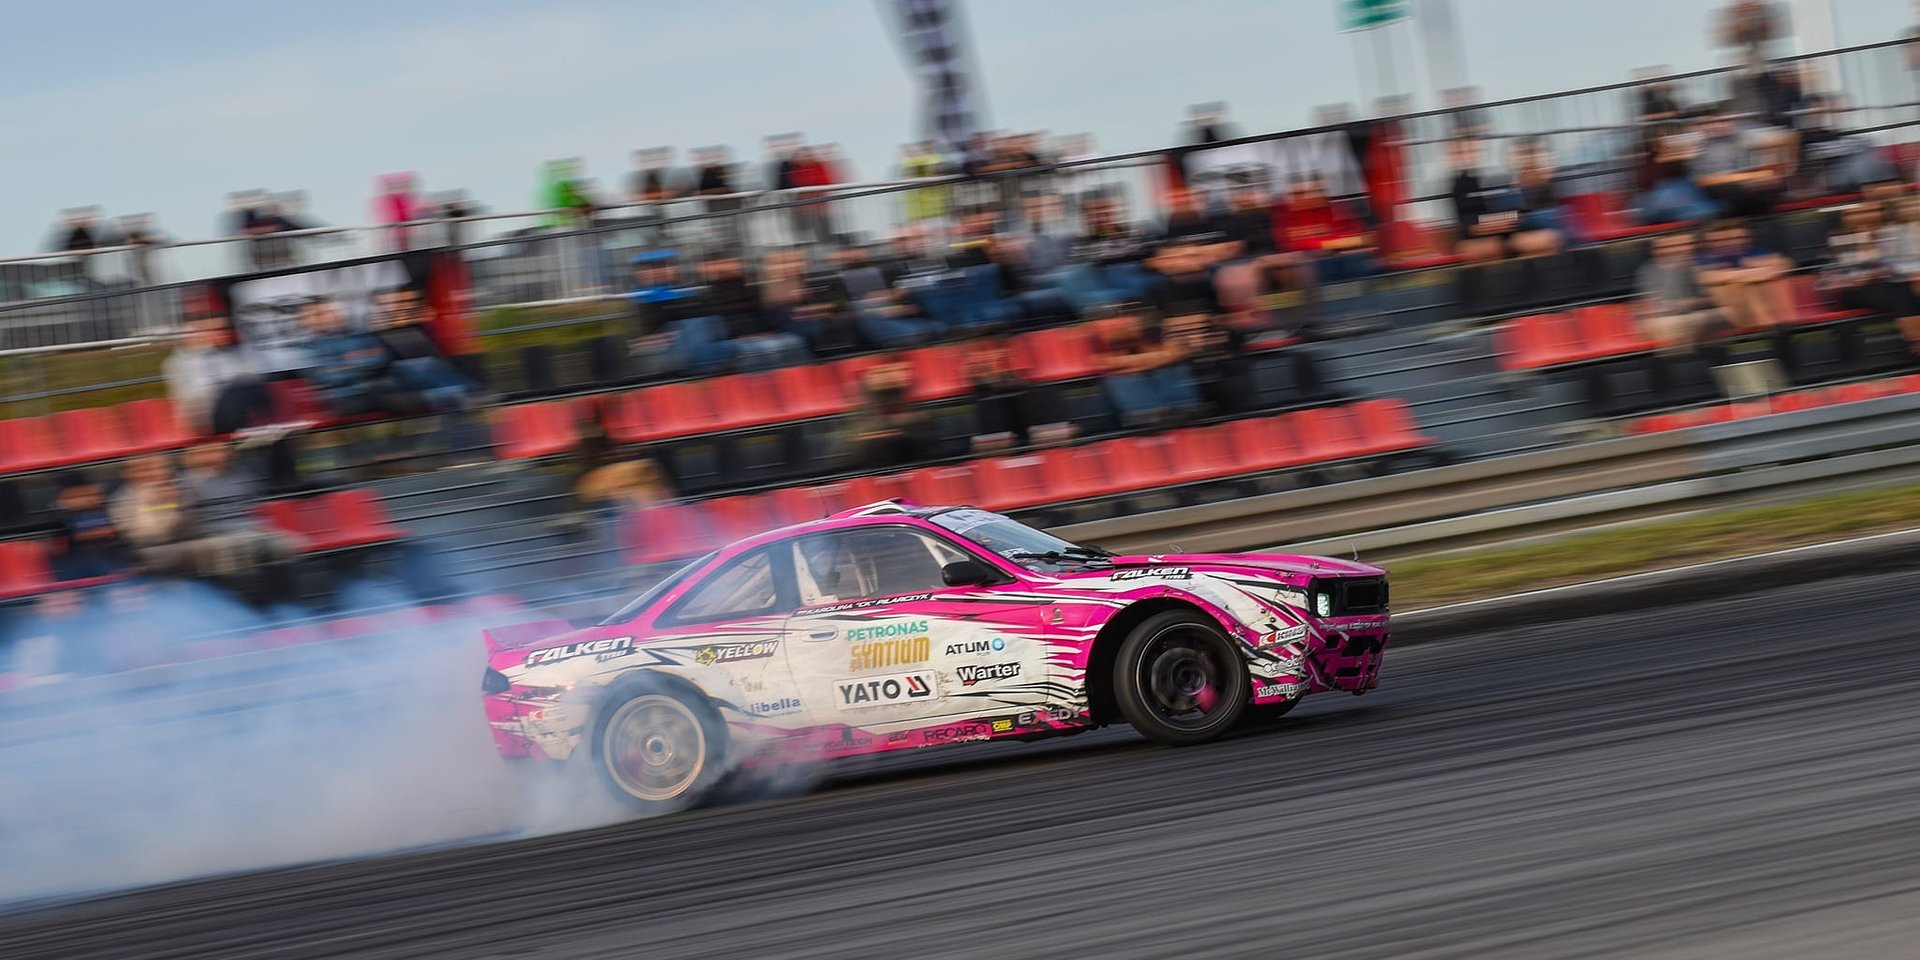 Autodrom Jastrząb announces II edition of its widely popular Drift Cup